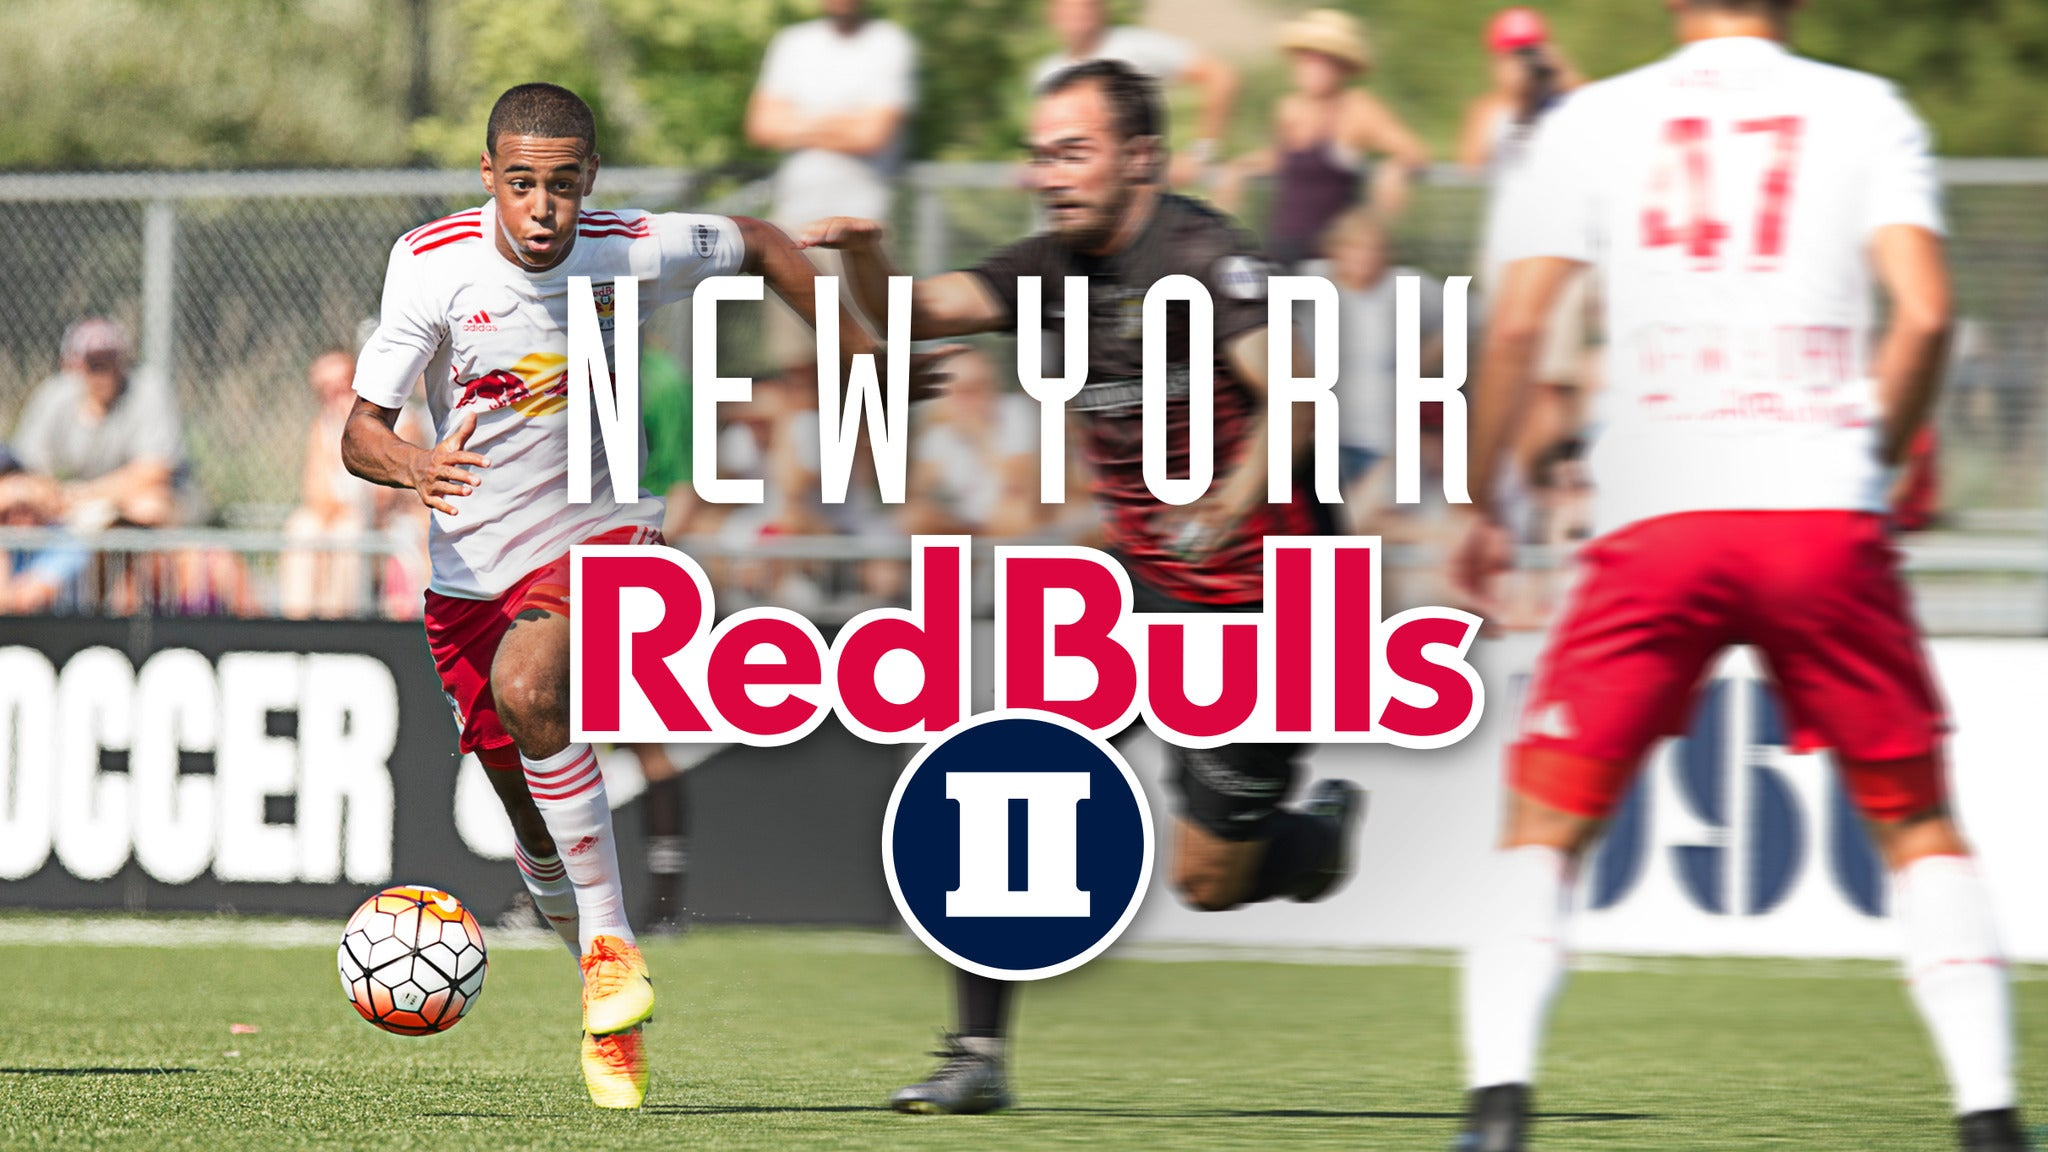 New York Red Bulls II vs. Tampa Bay Rowdies